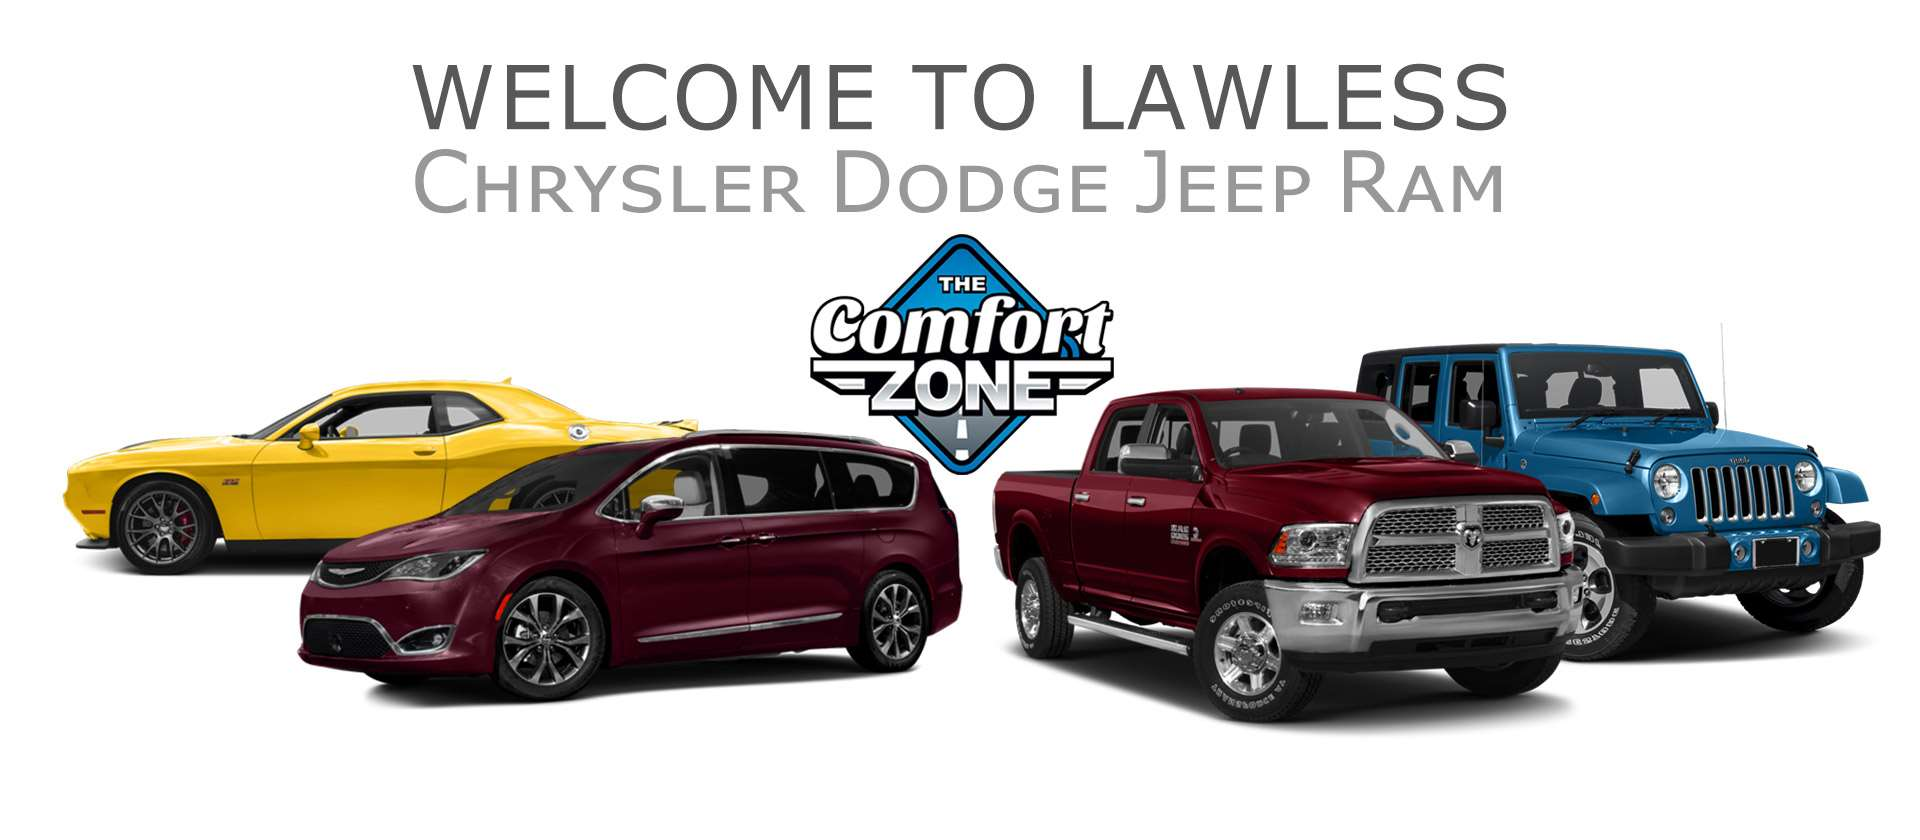 Chevrolet Financing Grand Ledge >> All Used Inventory Lawless Chrysler Dodge Jeep Ram | Autos Post